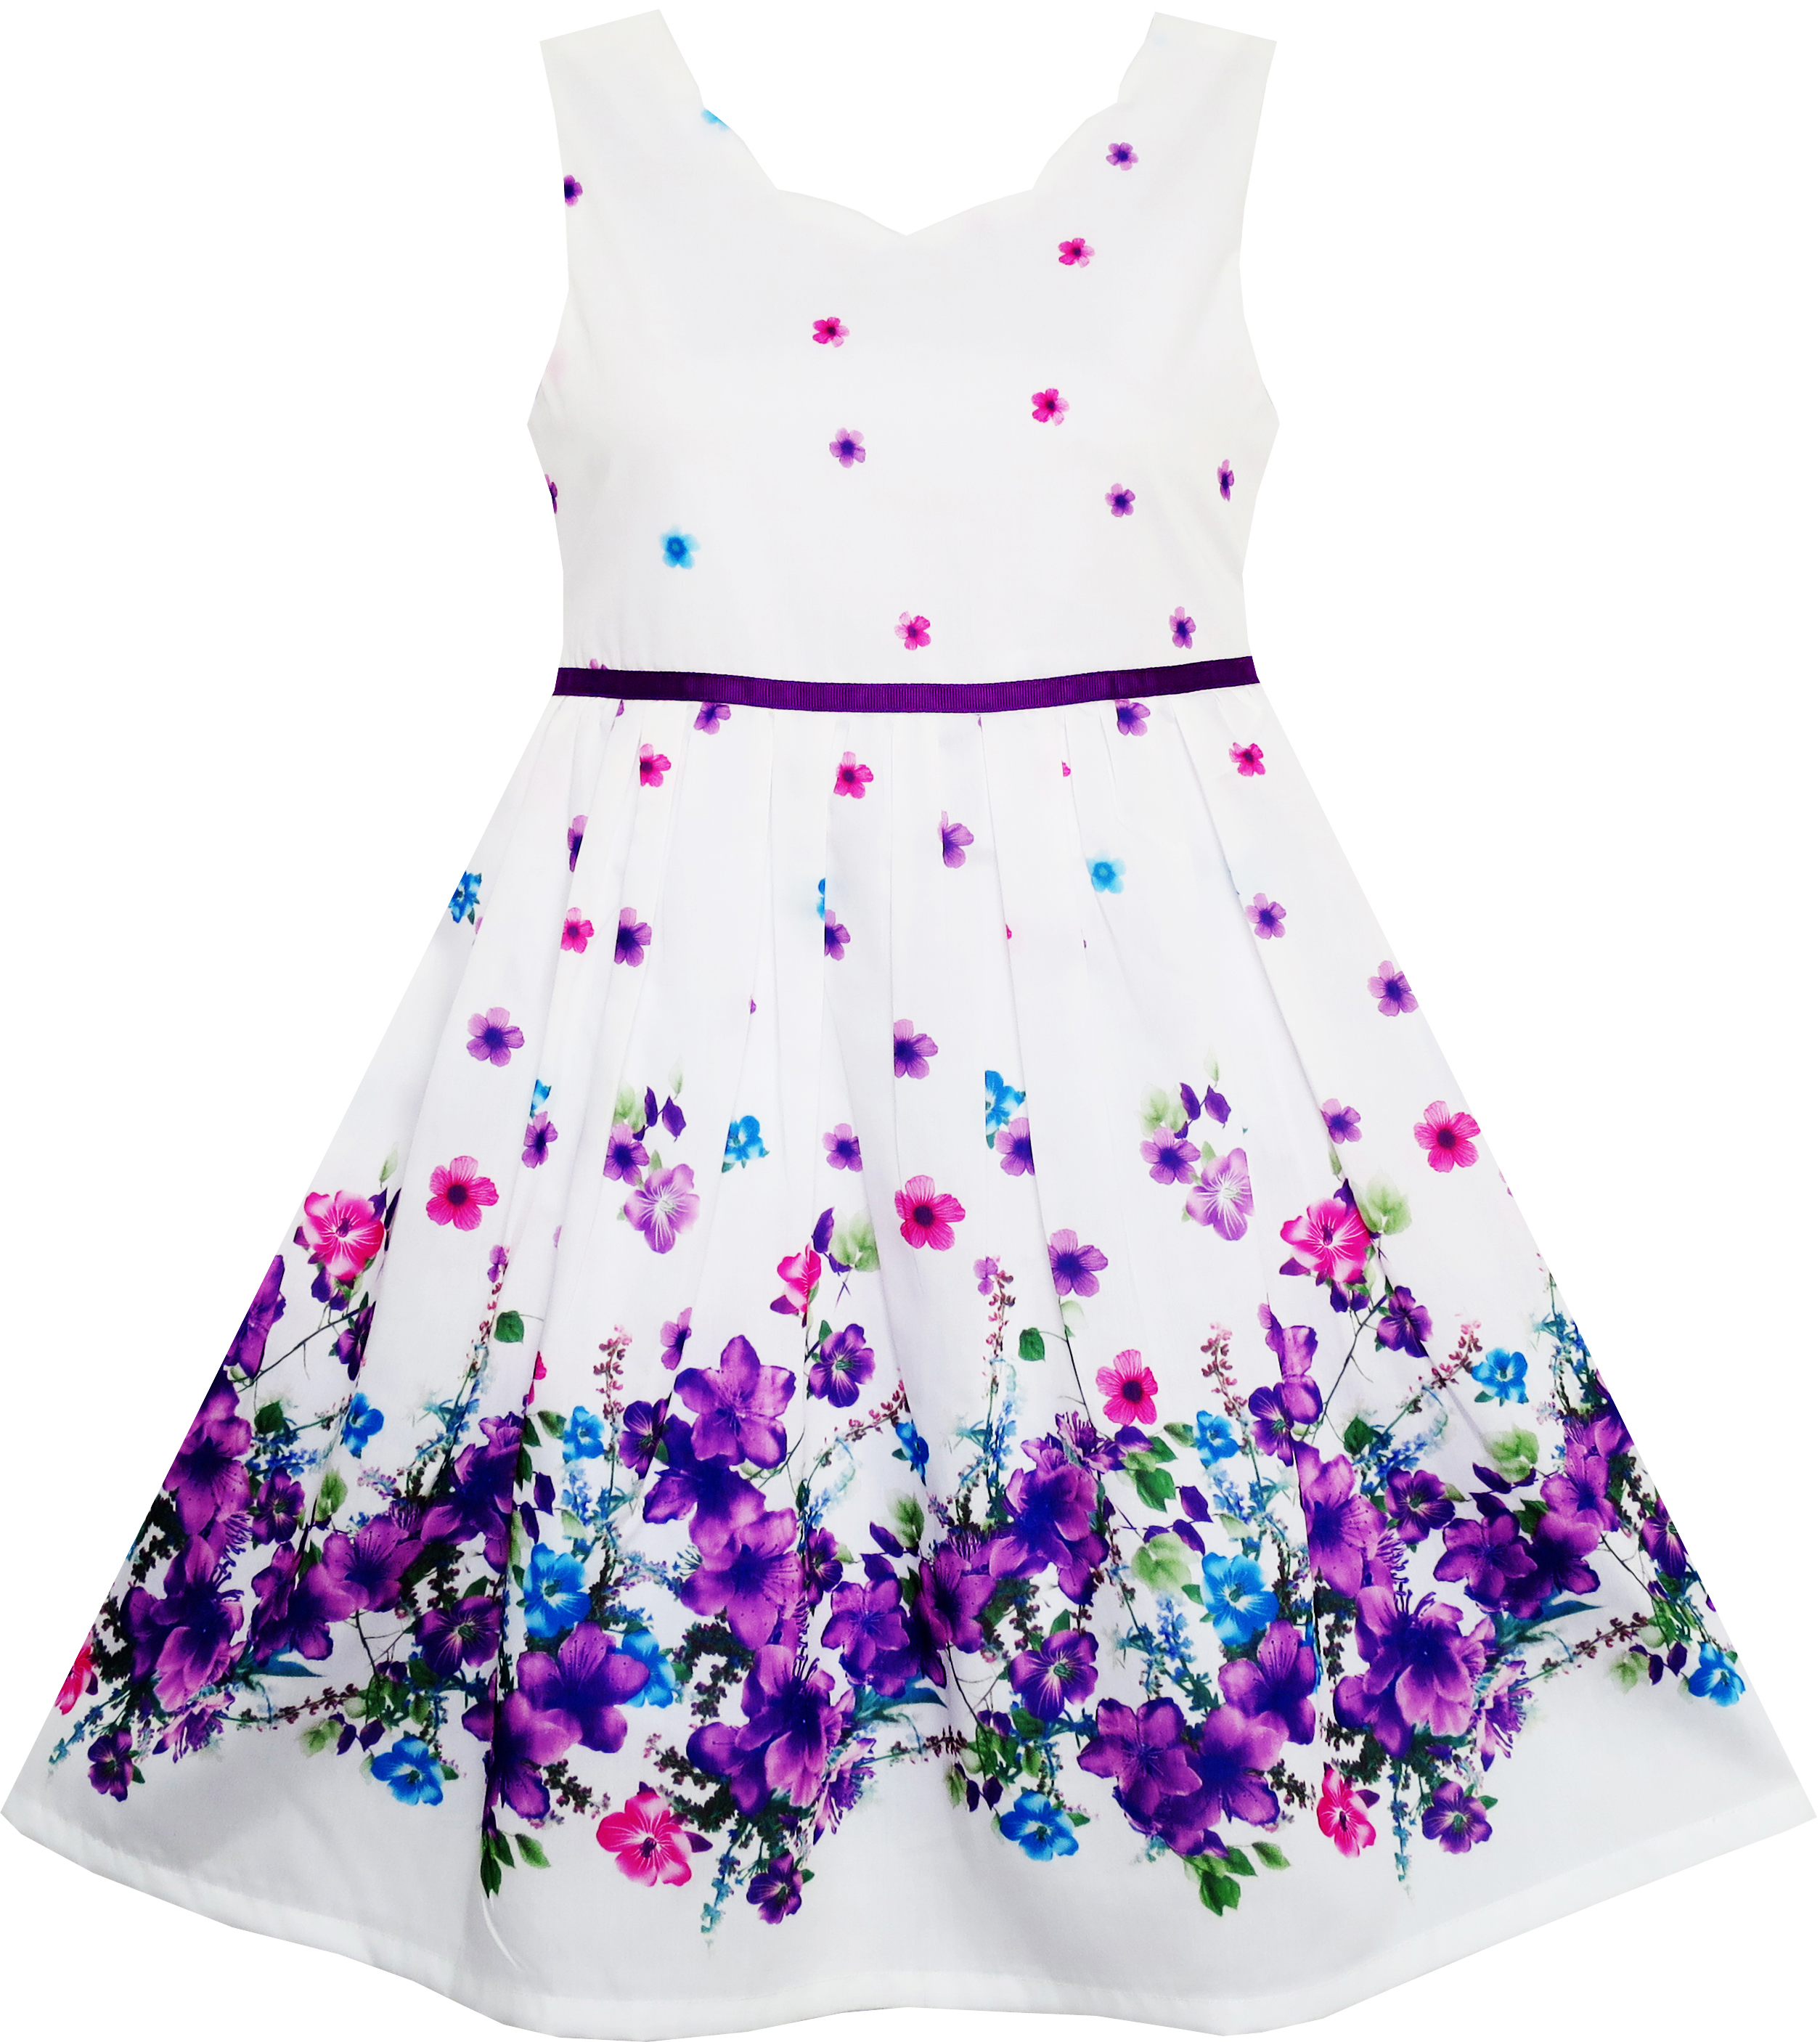 Sunny Fashion Girls Dress Elegant Princess Blooming Flower In Wind Size 4-12